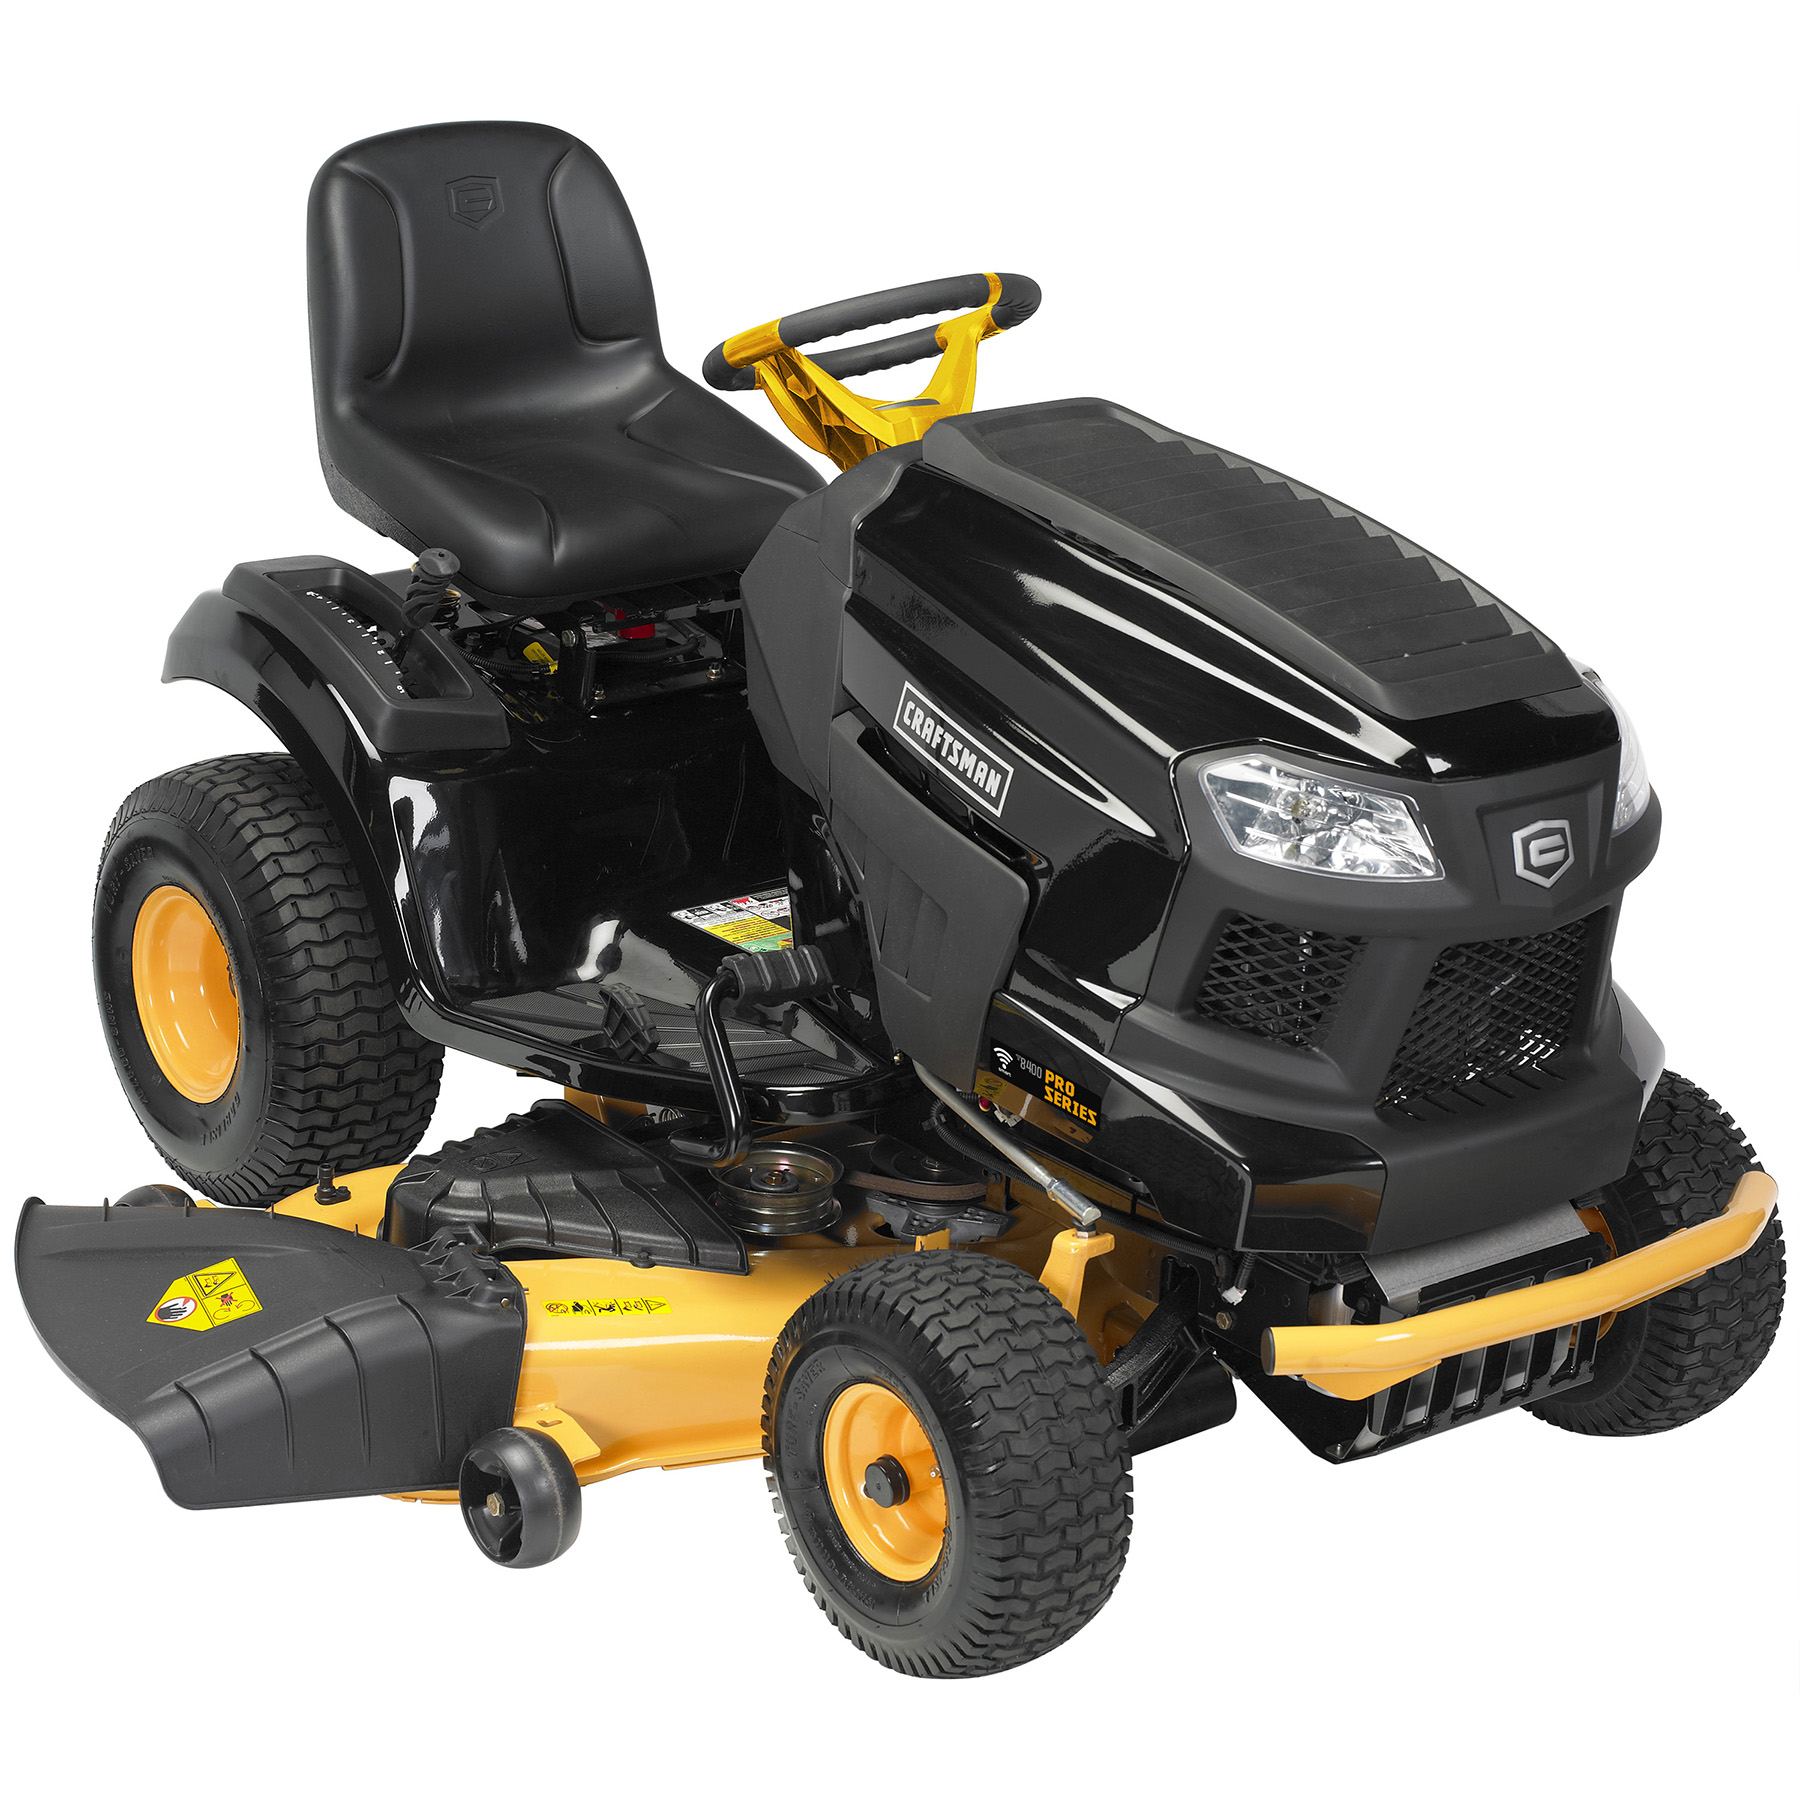 "Craftsman ProSeries 27044 54"""" 747cc Kohler Hydrostatic Riding Mower with Smart Lawn Technology"